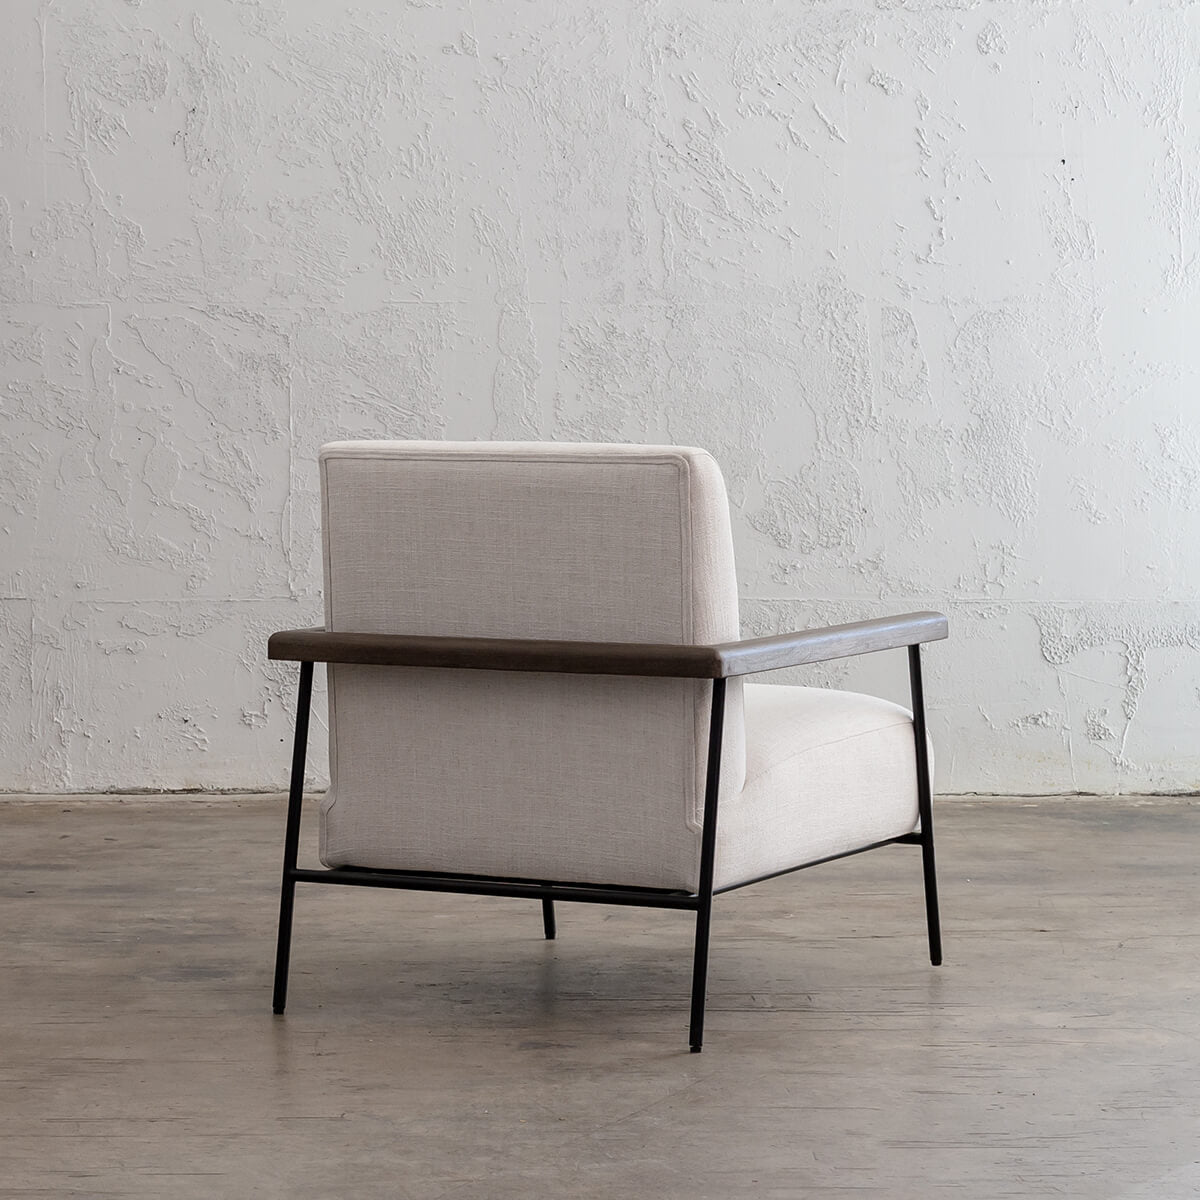 SAUVAGE ESSAN ARM CHAIR  |  SKIMMING STONE WHITE